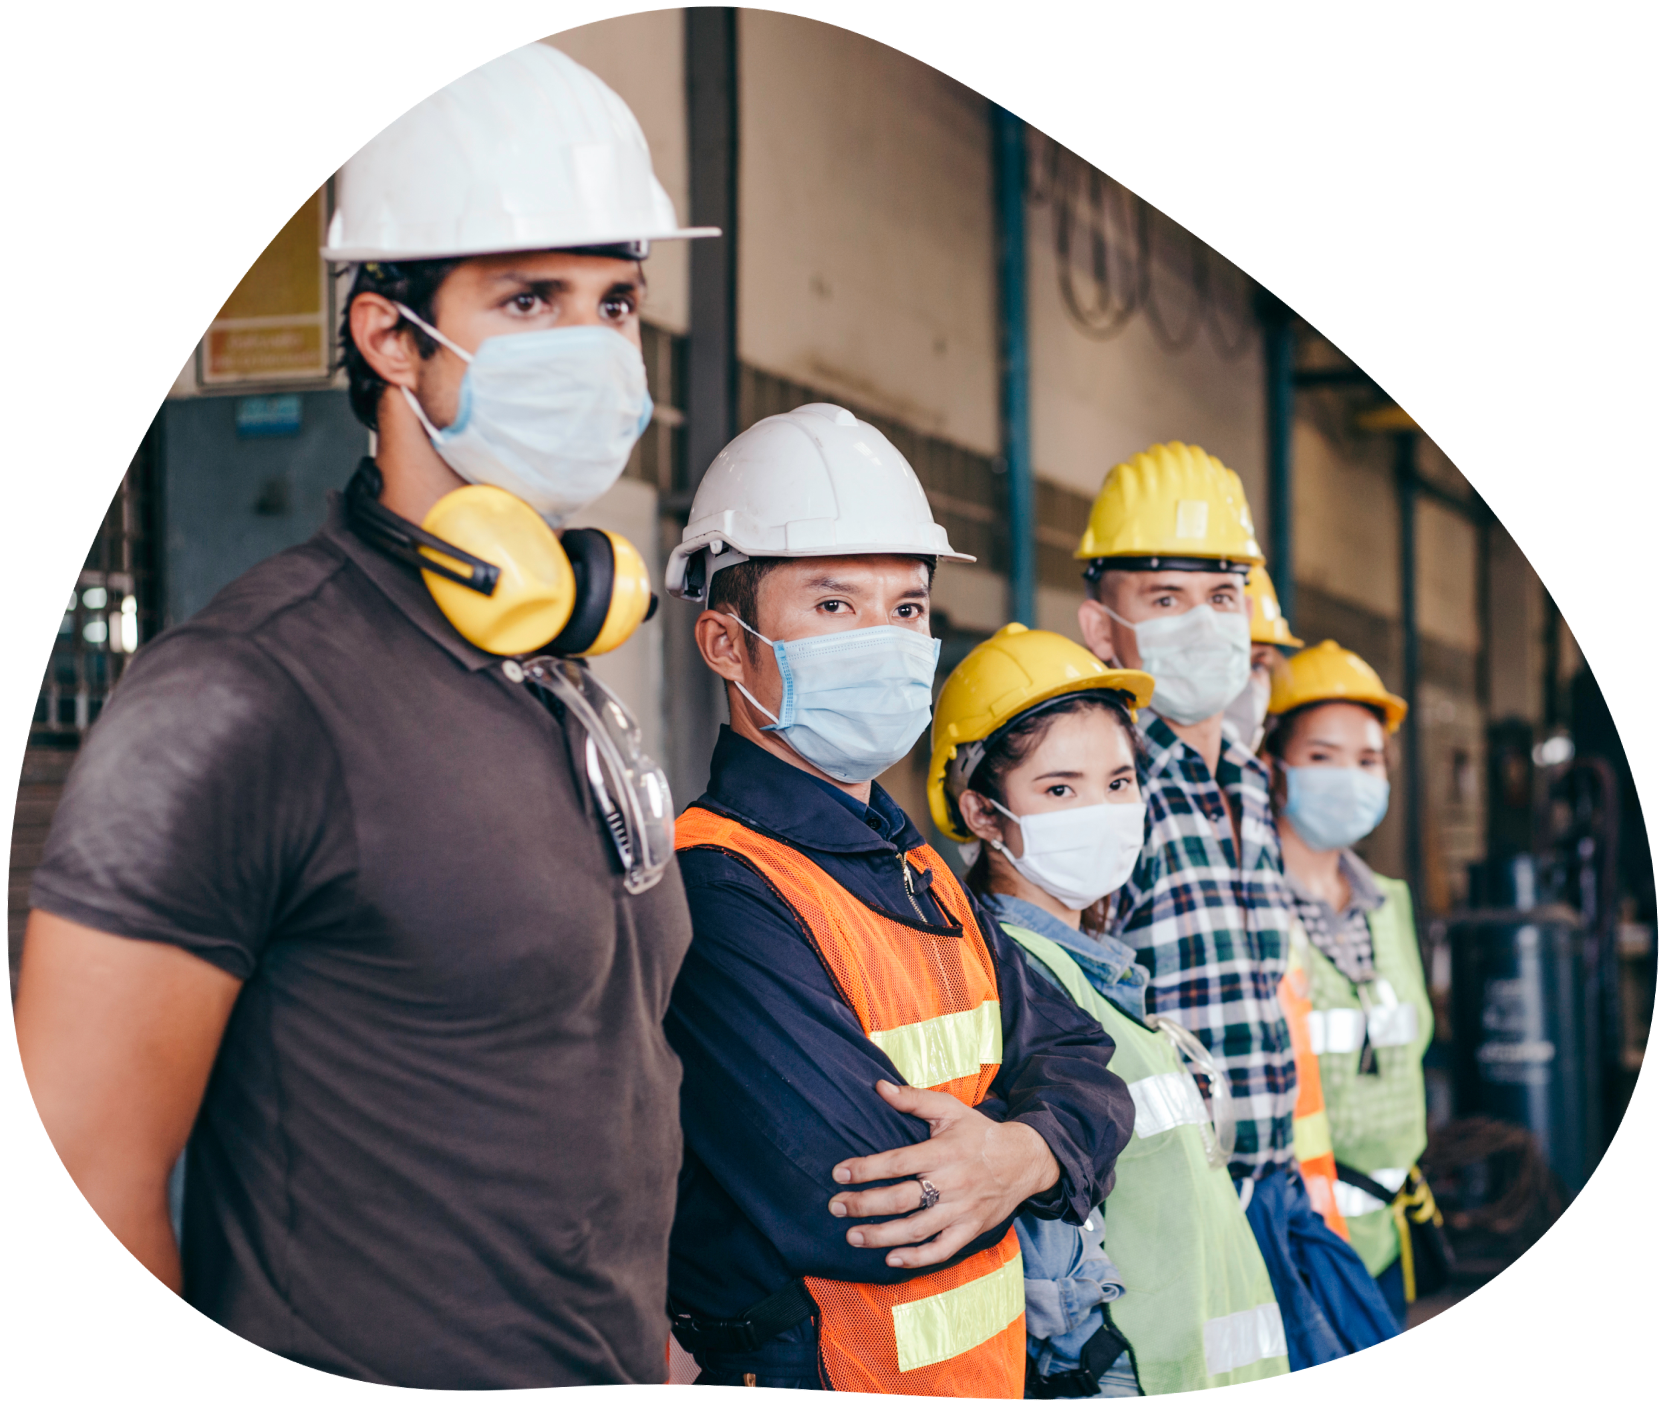 Lineup of construction workers wearing masks and hard hats